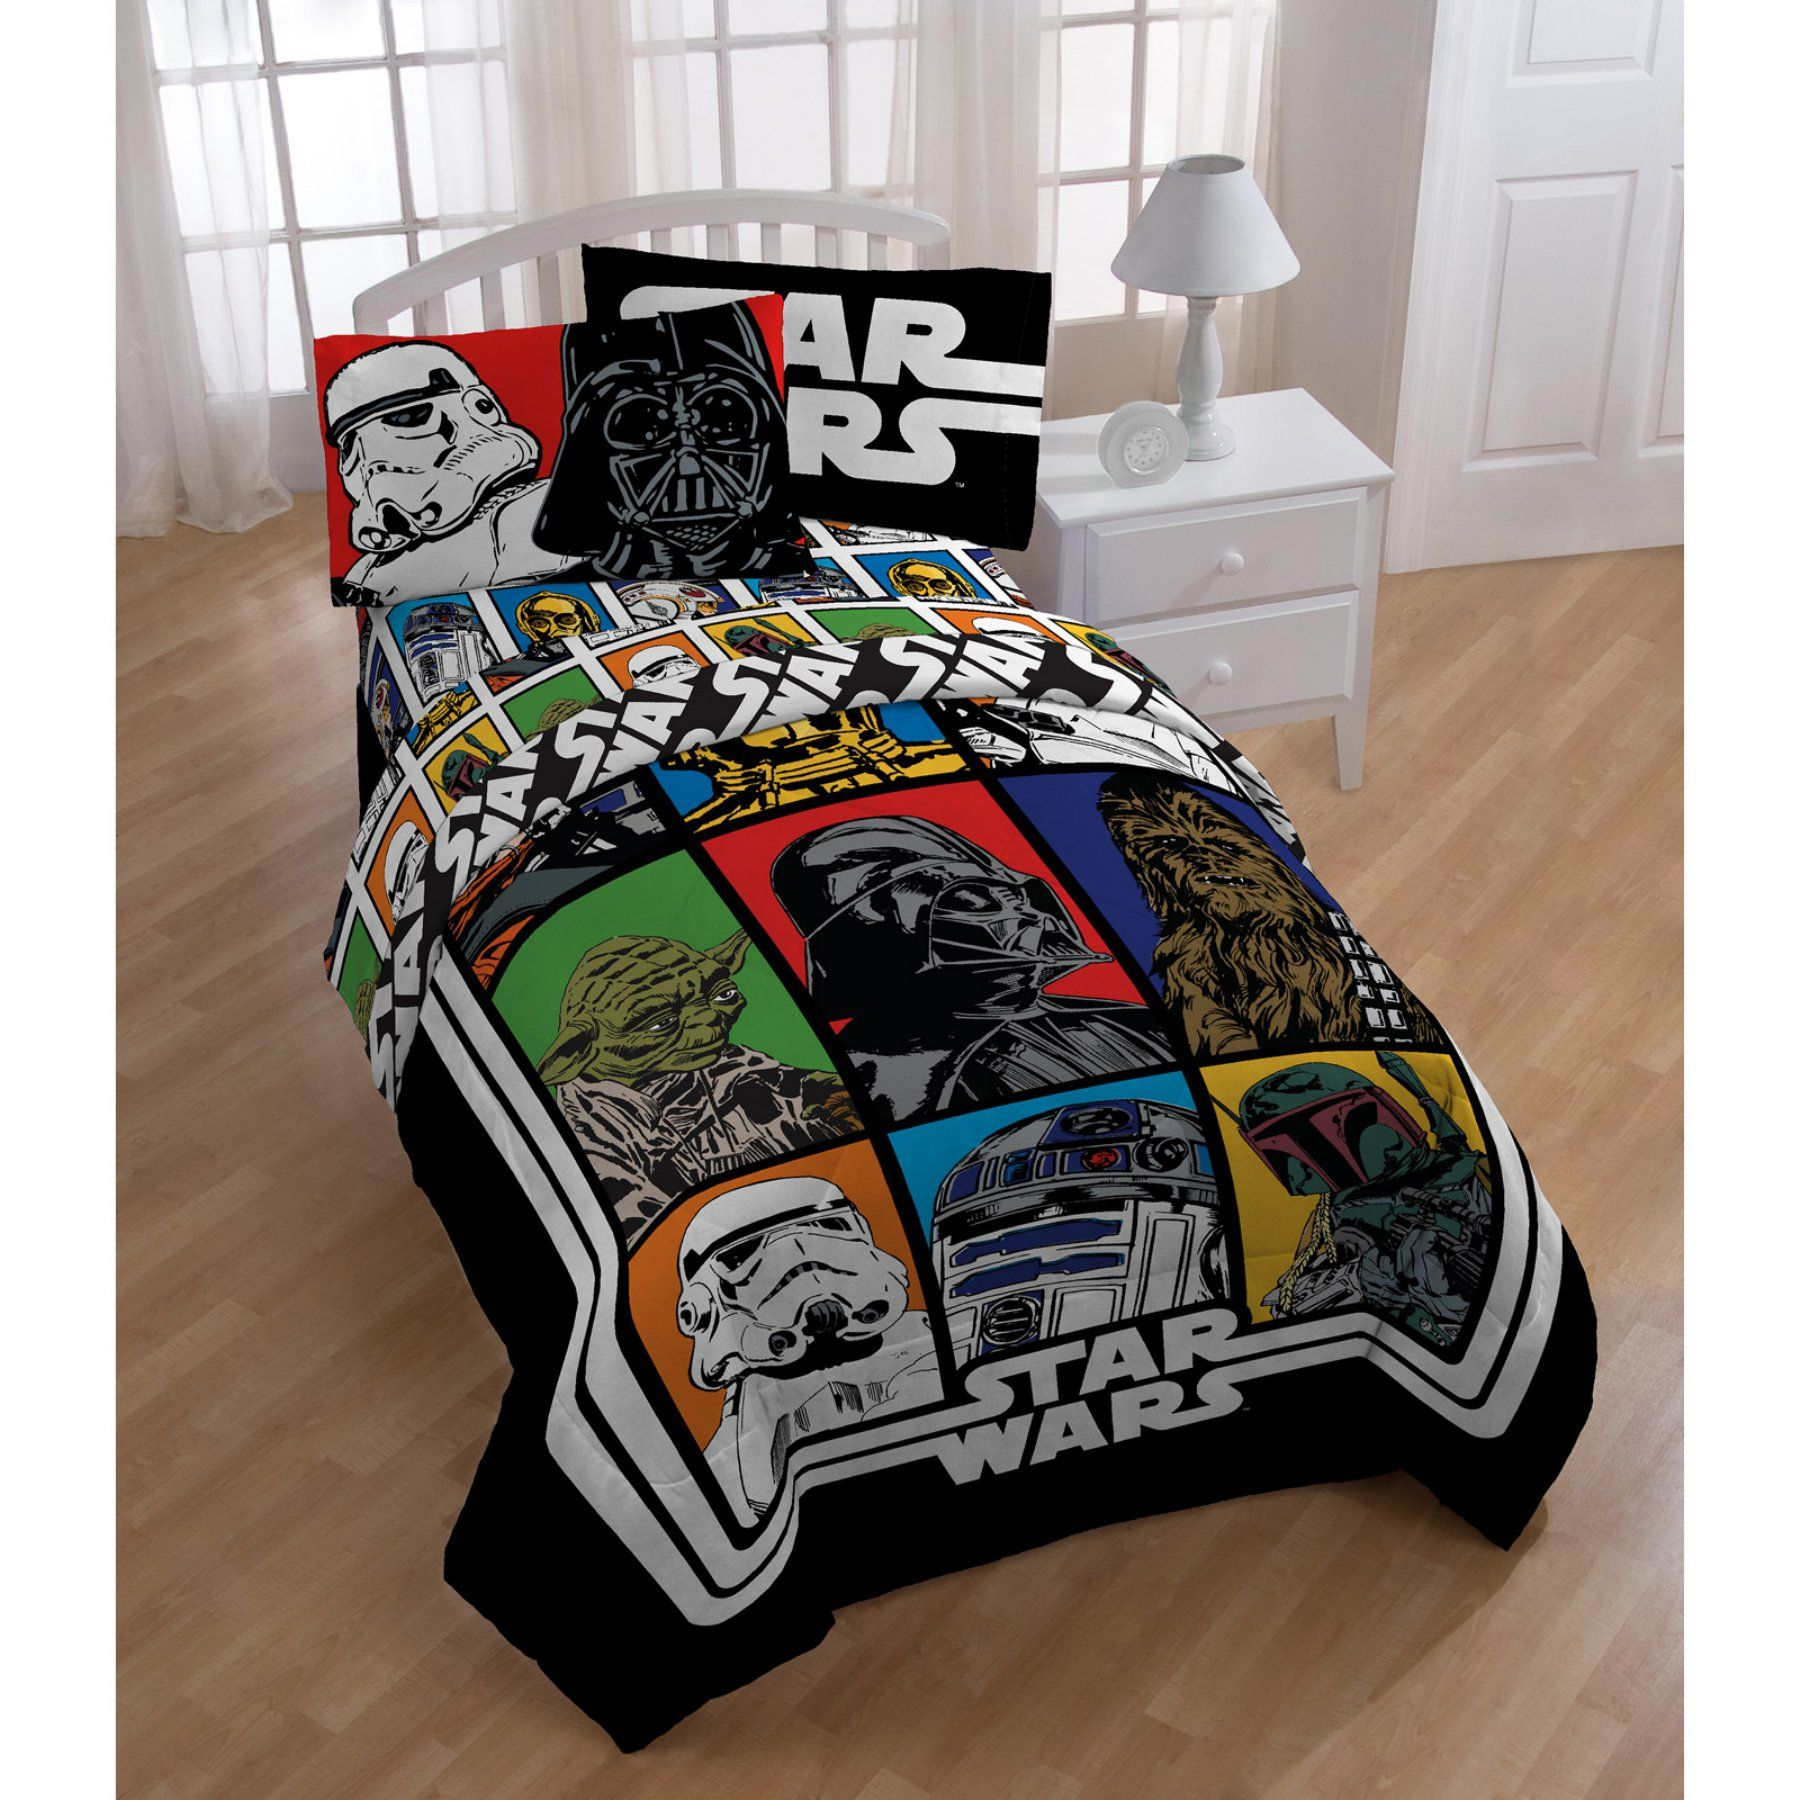 Star Wars Classic Reversible Comforter By Star Wars Jf26970